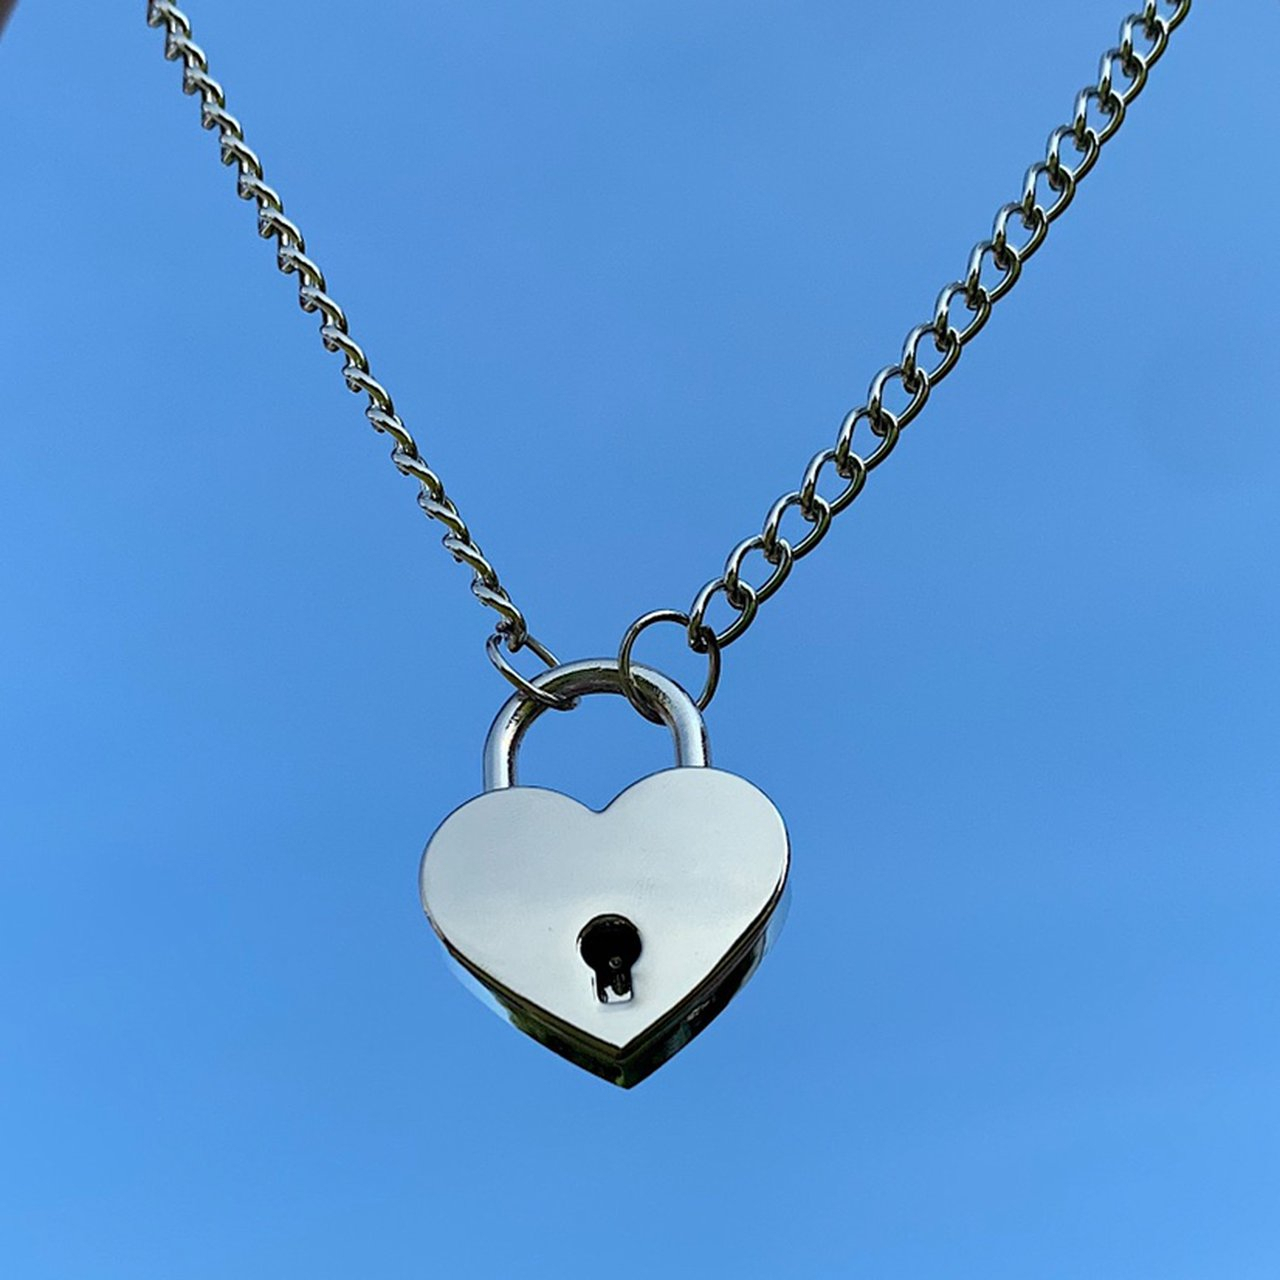 Heart Shaped Padlock Chain Necklace. Keys Will Come – Depop Throughout Most Popular Heart Shaped Padlock Rings (Gallery 21 of 25)